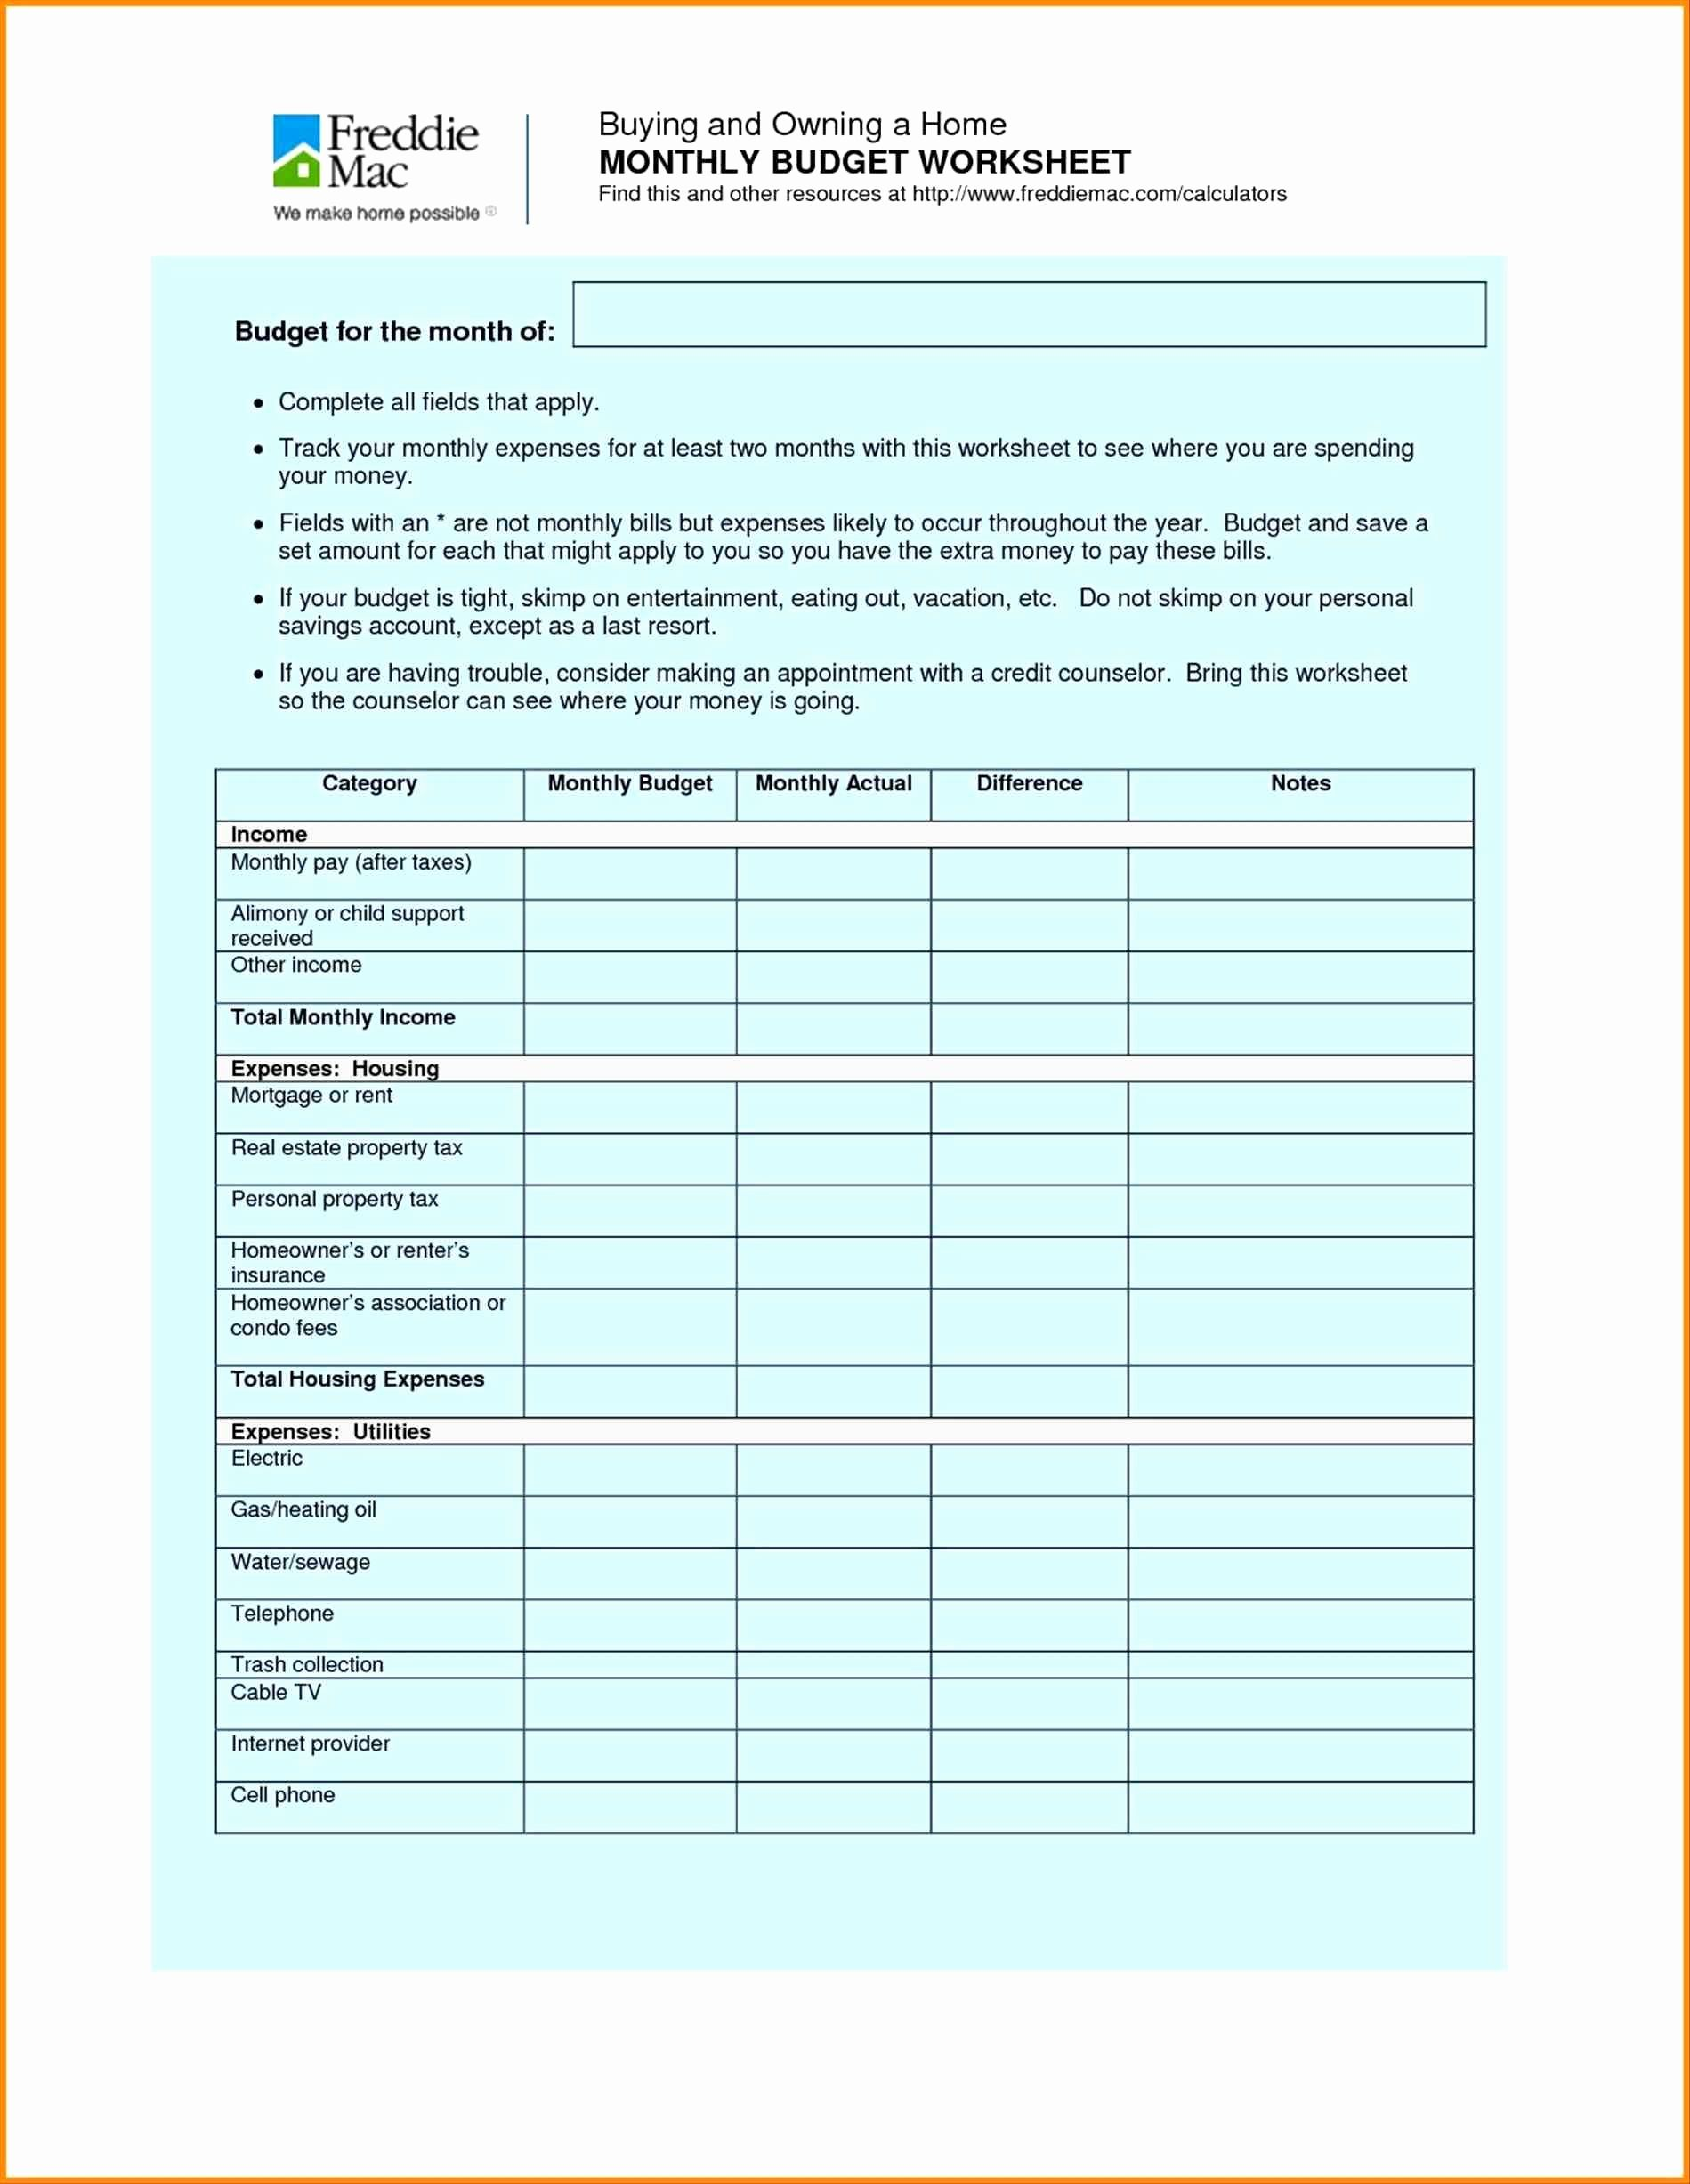 Dave Ramsey Home Budget Worksheet Printable Worksheets And Activities For Teachers Parents Tutors And Homeschool Families